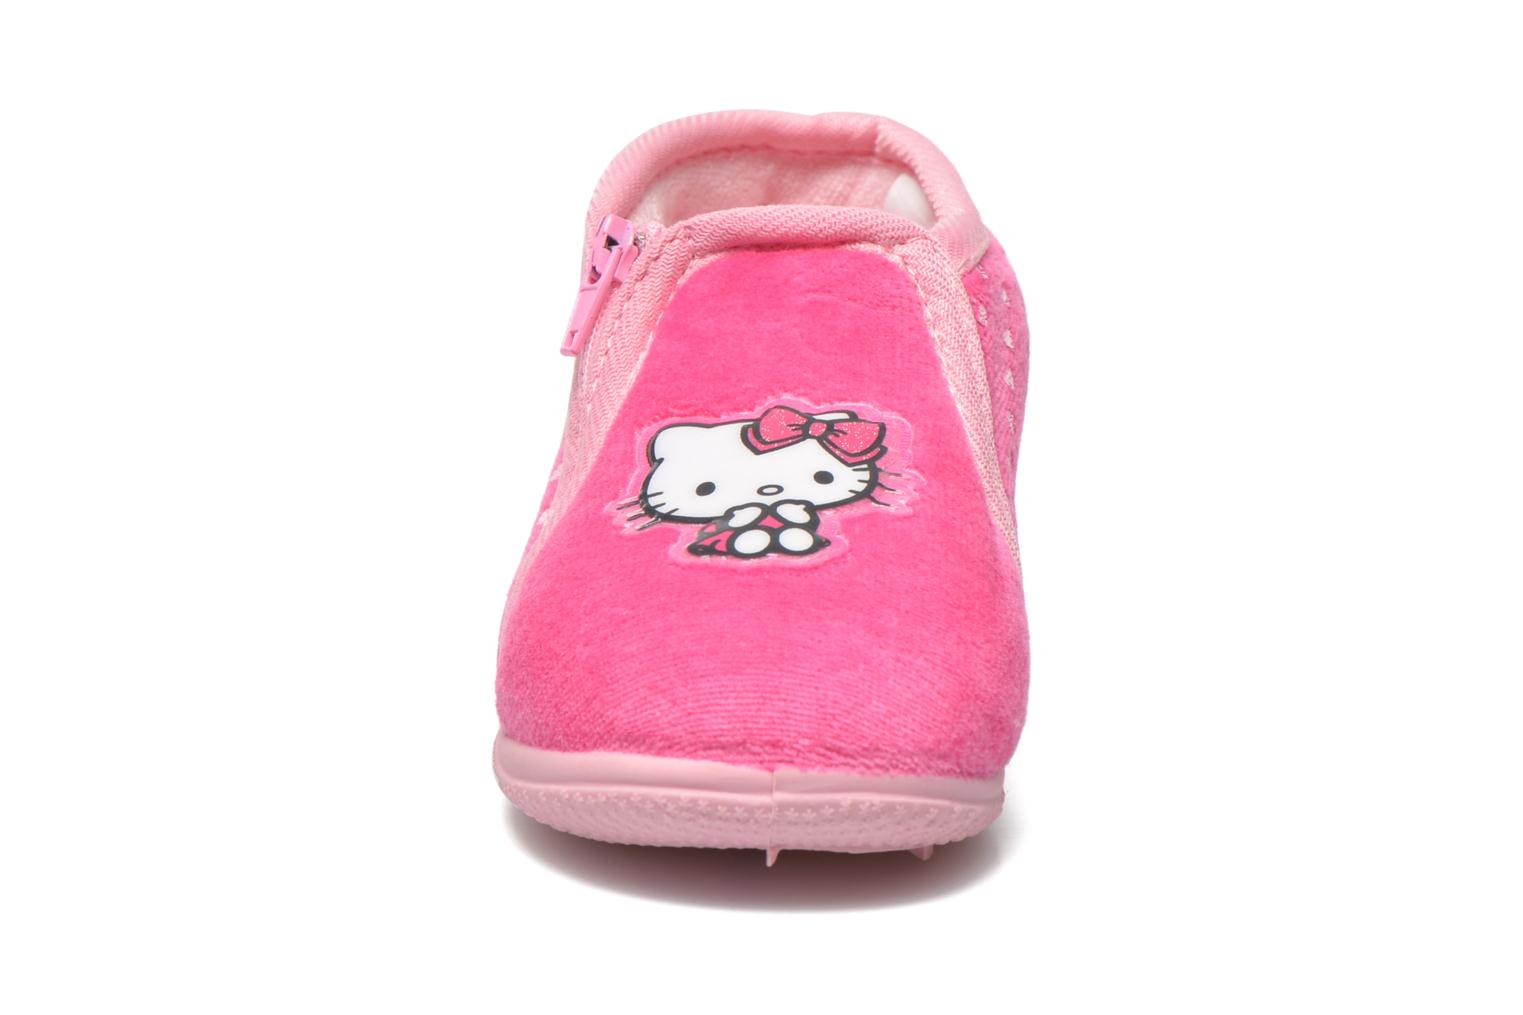 Chaussons Hello Kitty Hk Reste Rose vue portées chaussures